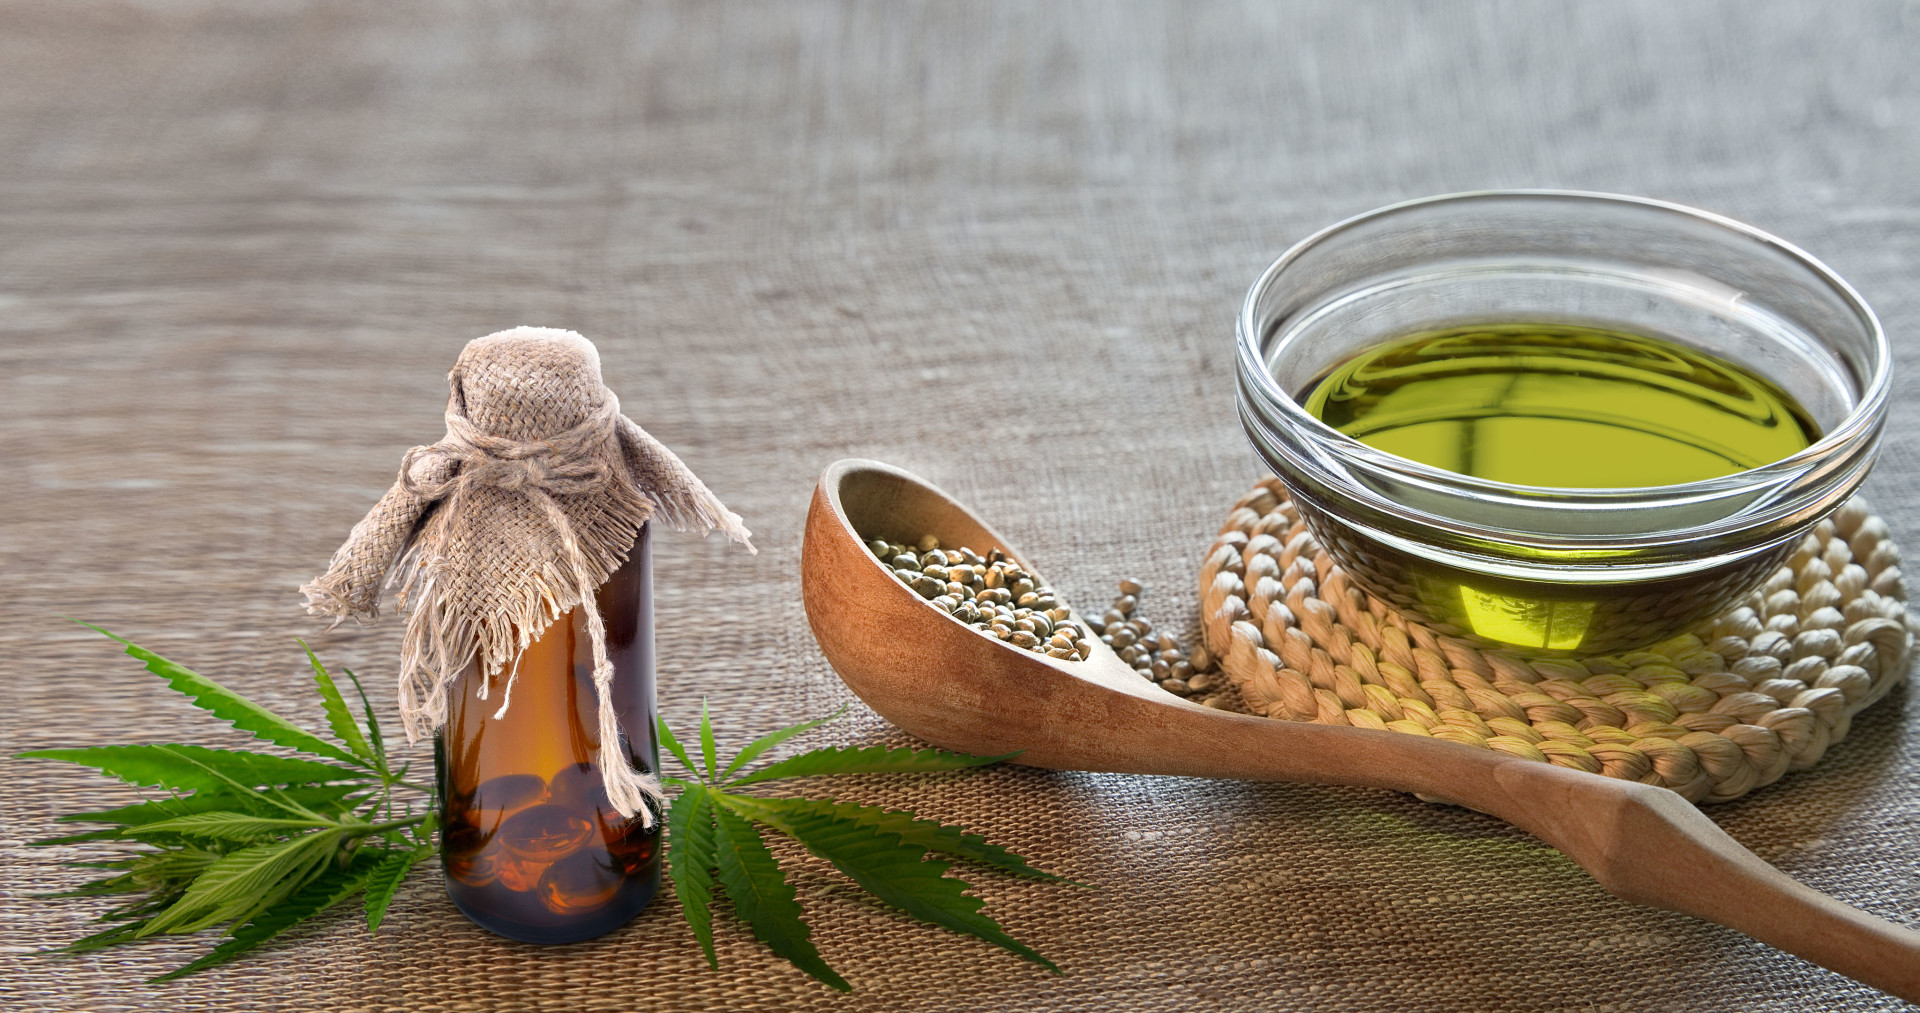 Do You Know the Scientific Benefits of CBD Oil